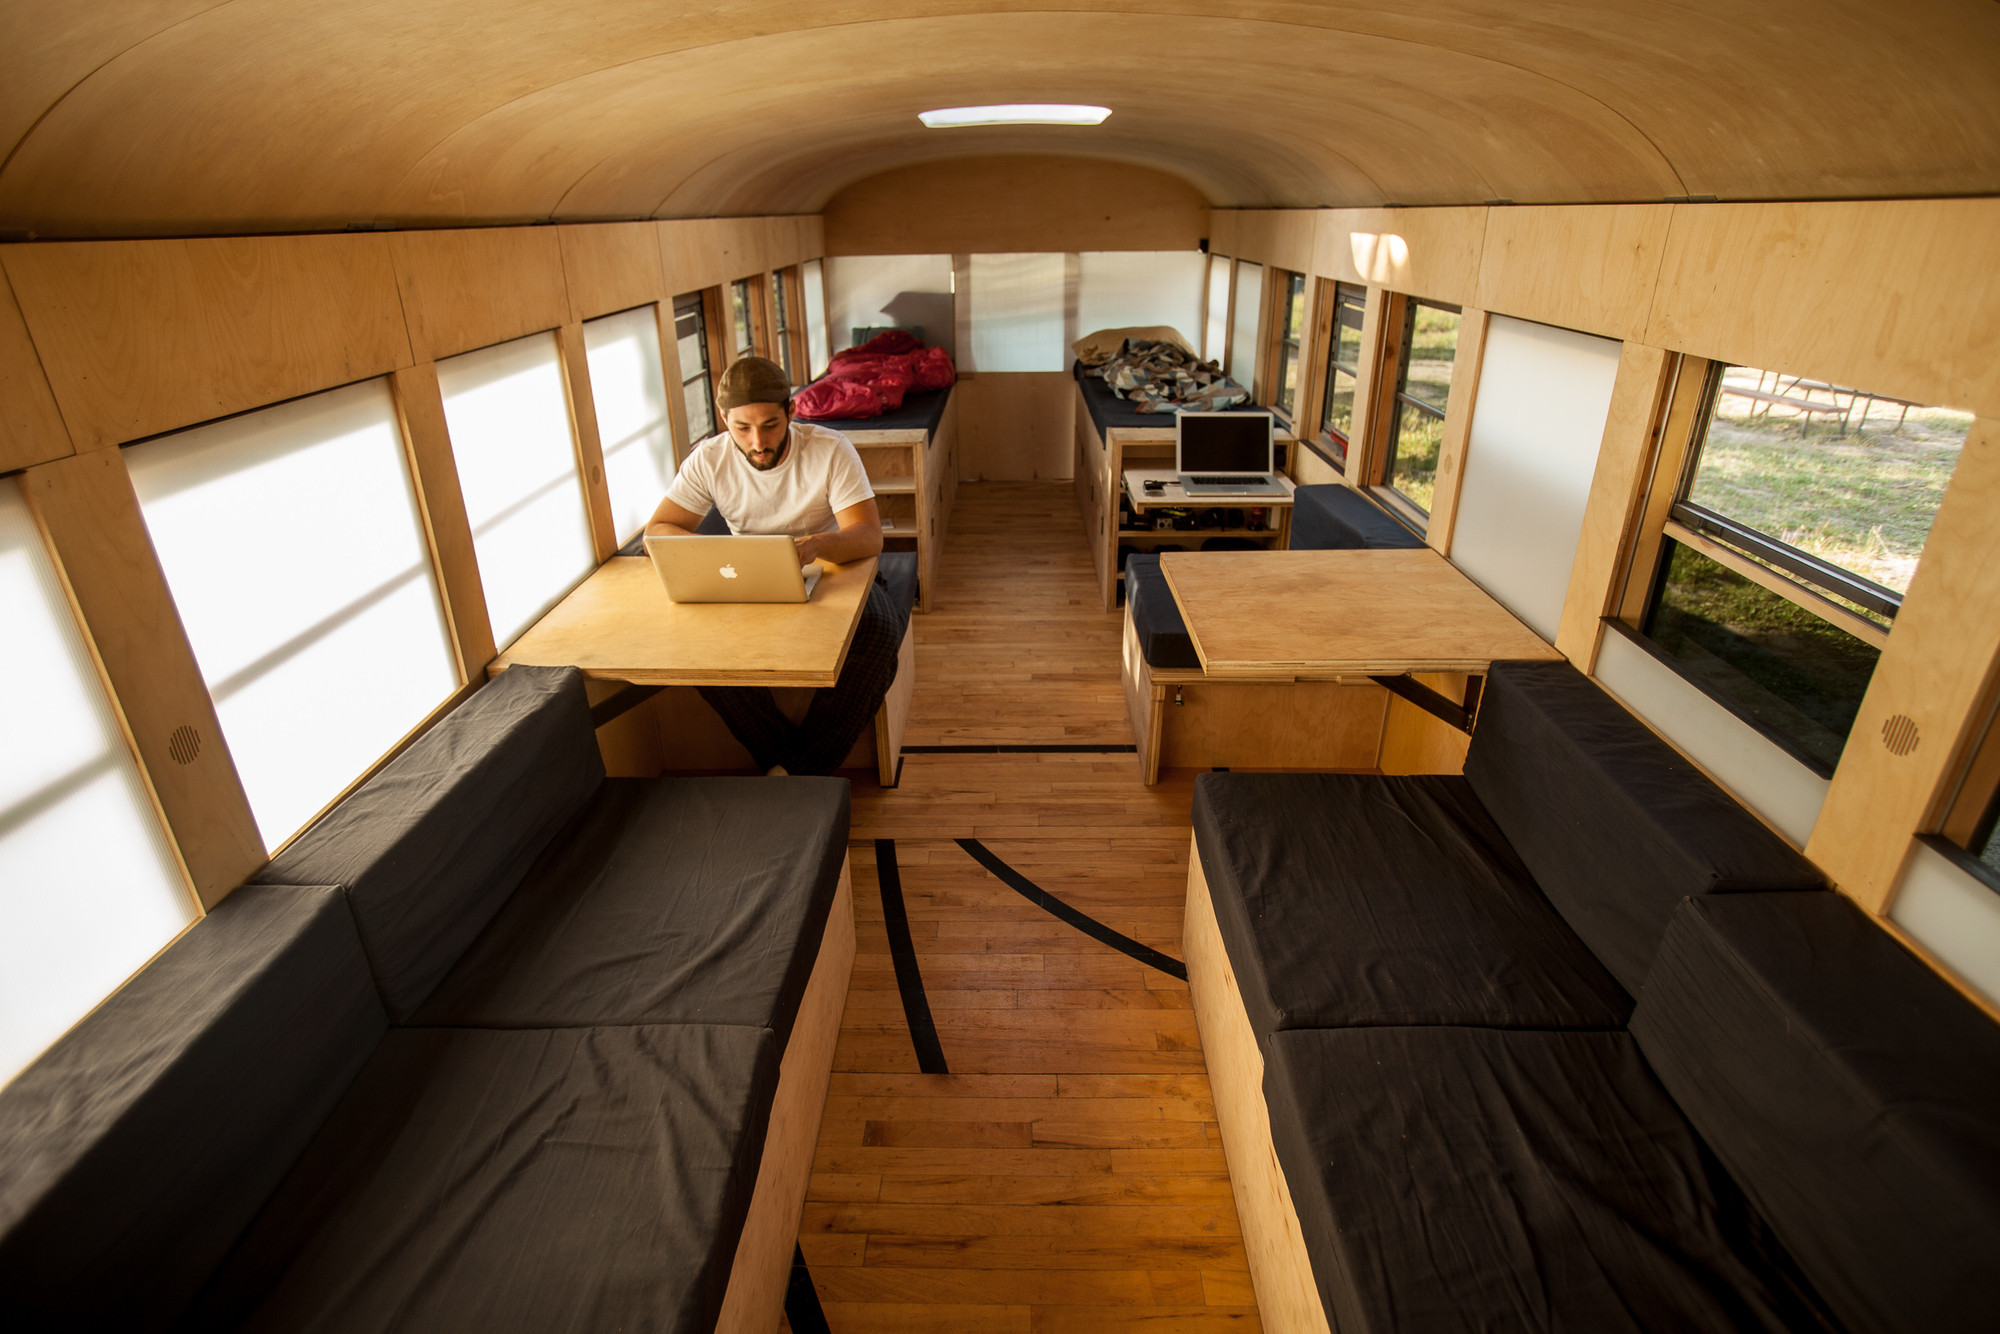 Student Thesis Project Turns Bus Into Tiny House, © Justin Evidon